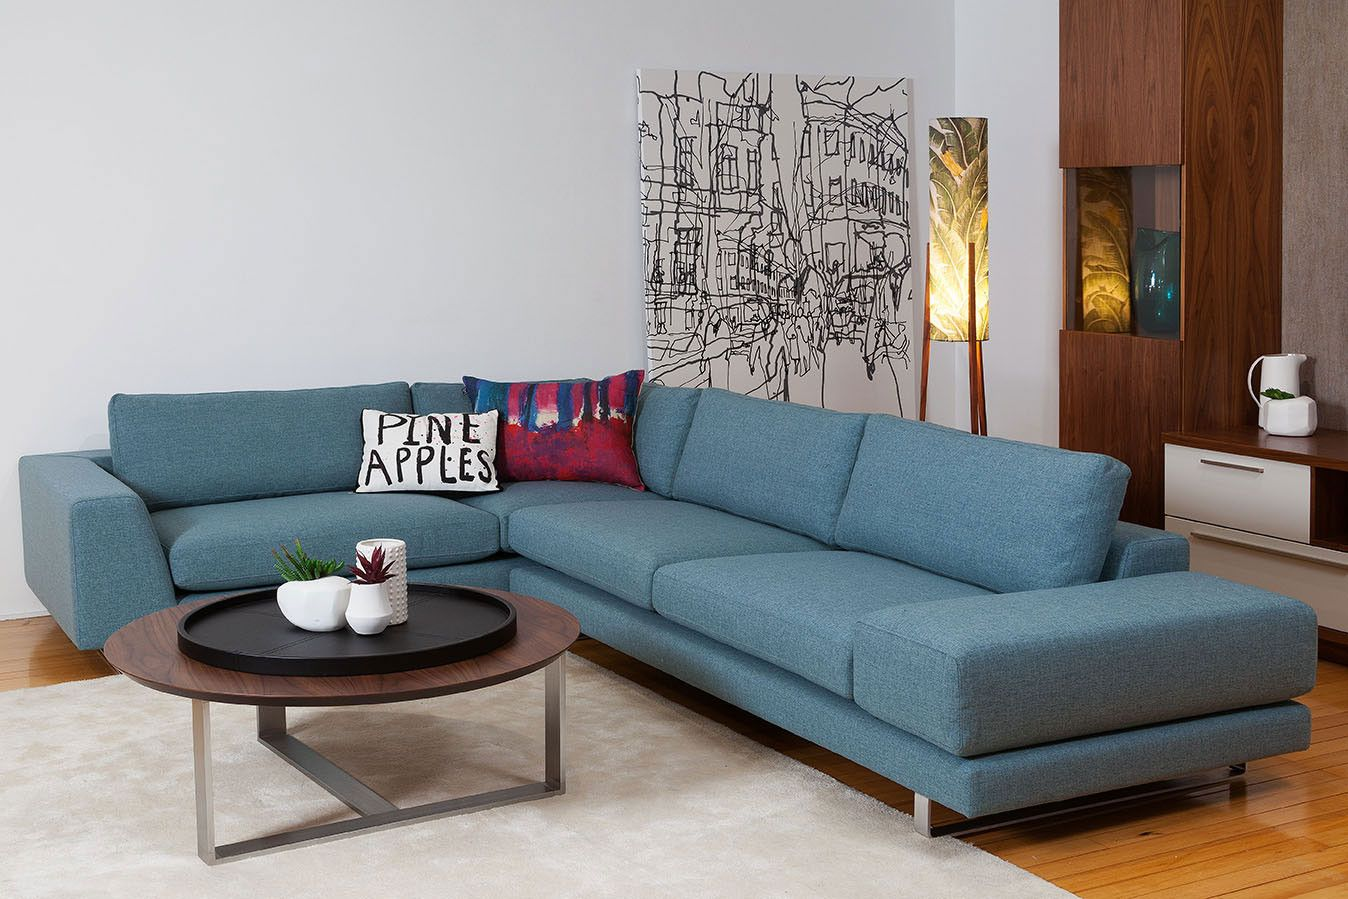 Leather Sofa Vs Fabric Sofa Why Each Of Them Is Still Valuable Sofa Design Fabric Sofa Modular Sofa